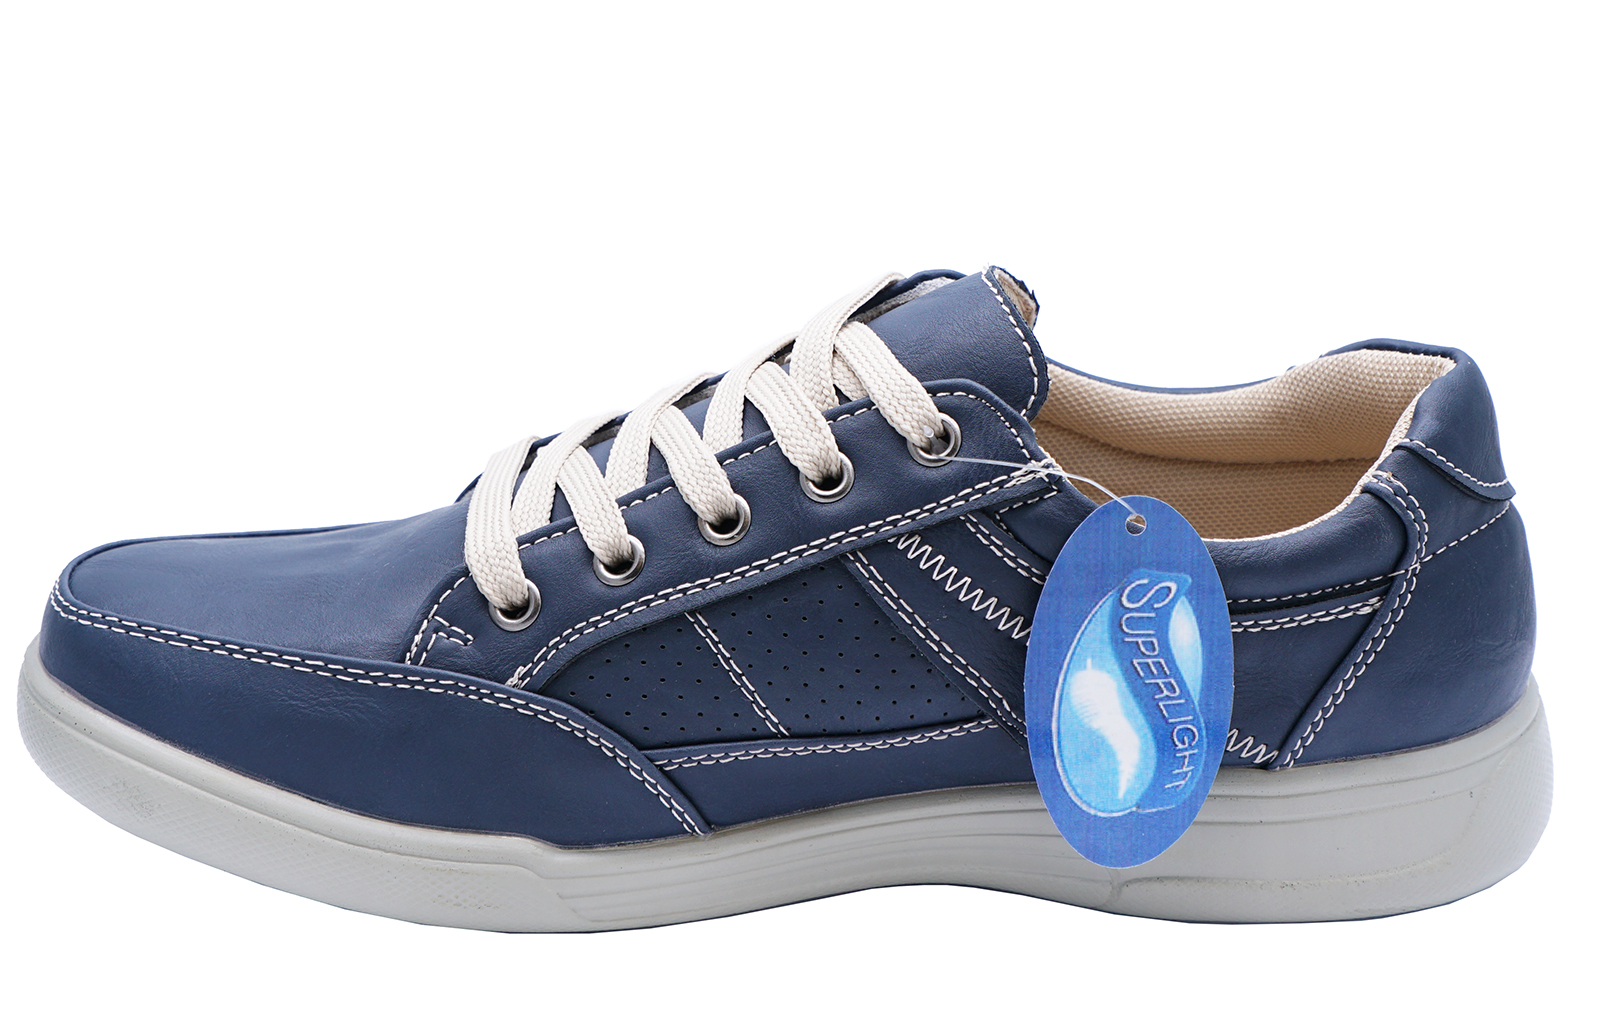 MENS-NAVY-LACE-UP-COMFY-LIGHTWEIGHT-SMART-CASUAL-WALKING-TRAINER-SHOES-UK-6-10 thumbnail 5